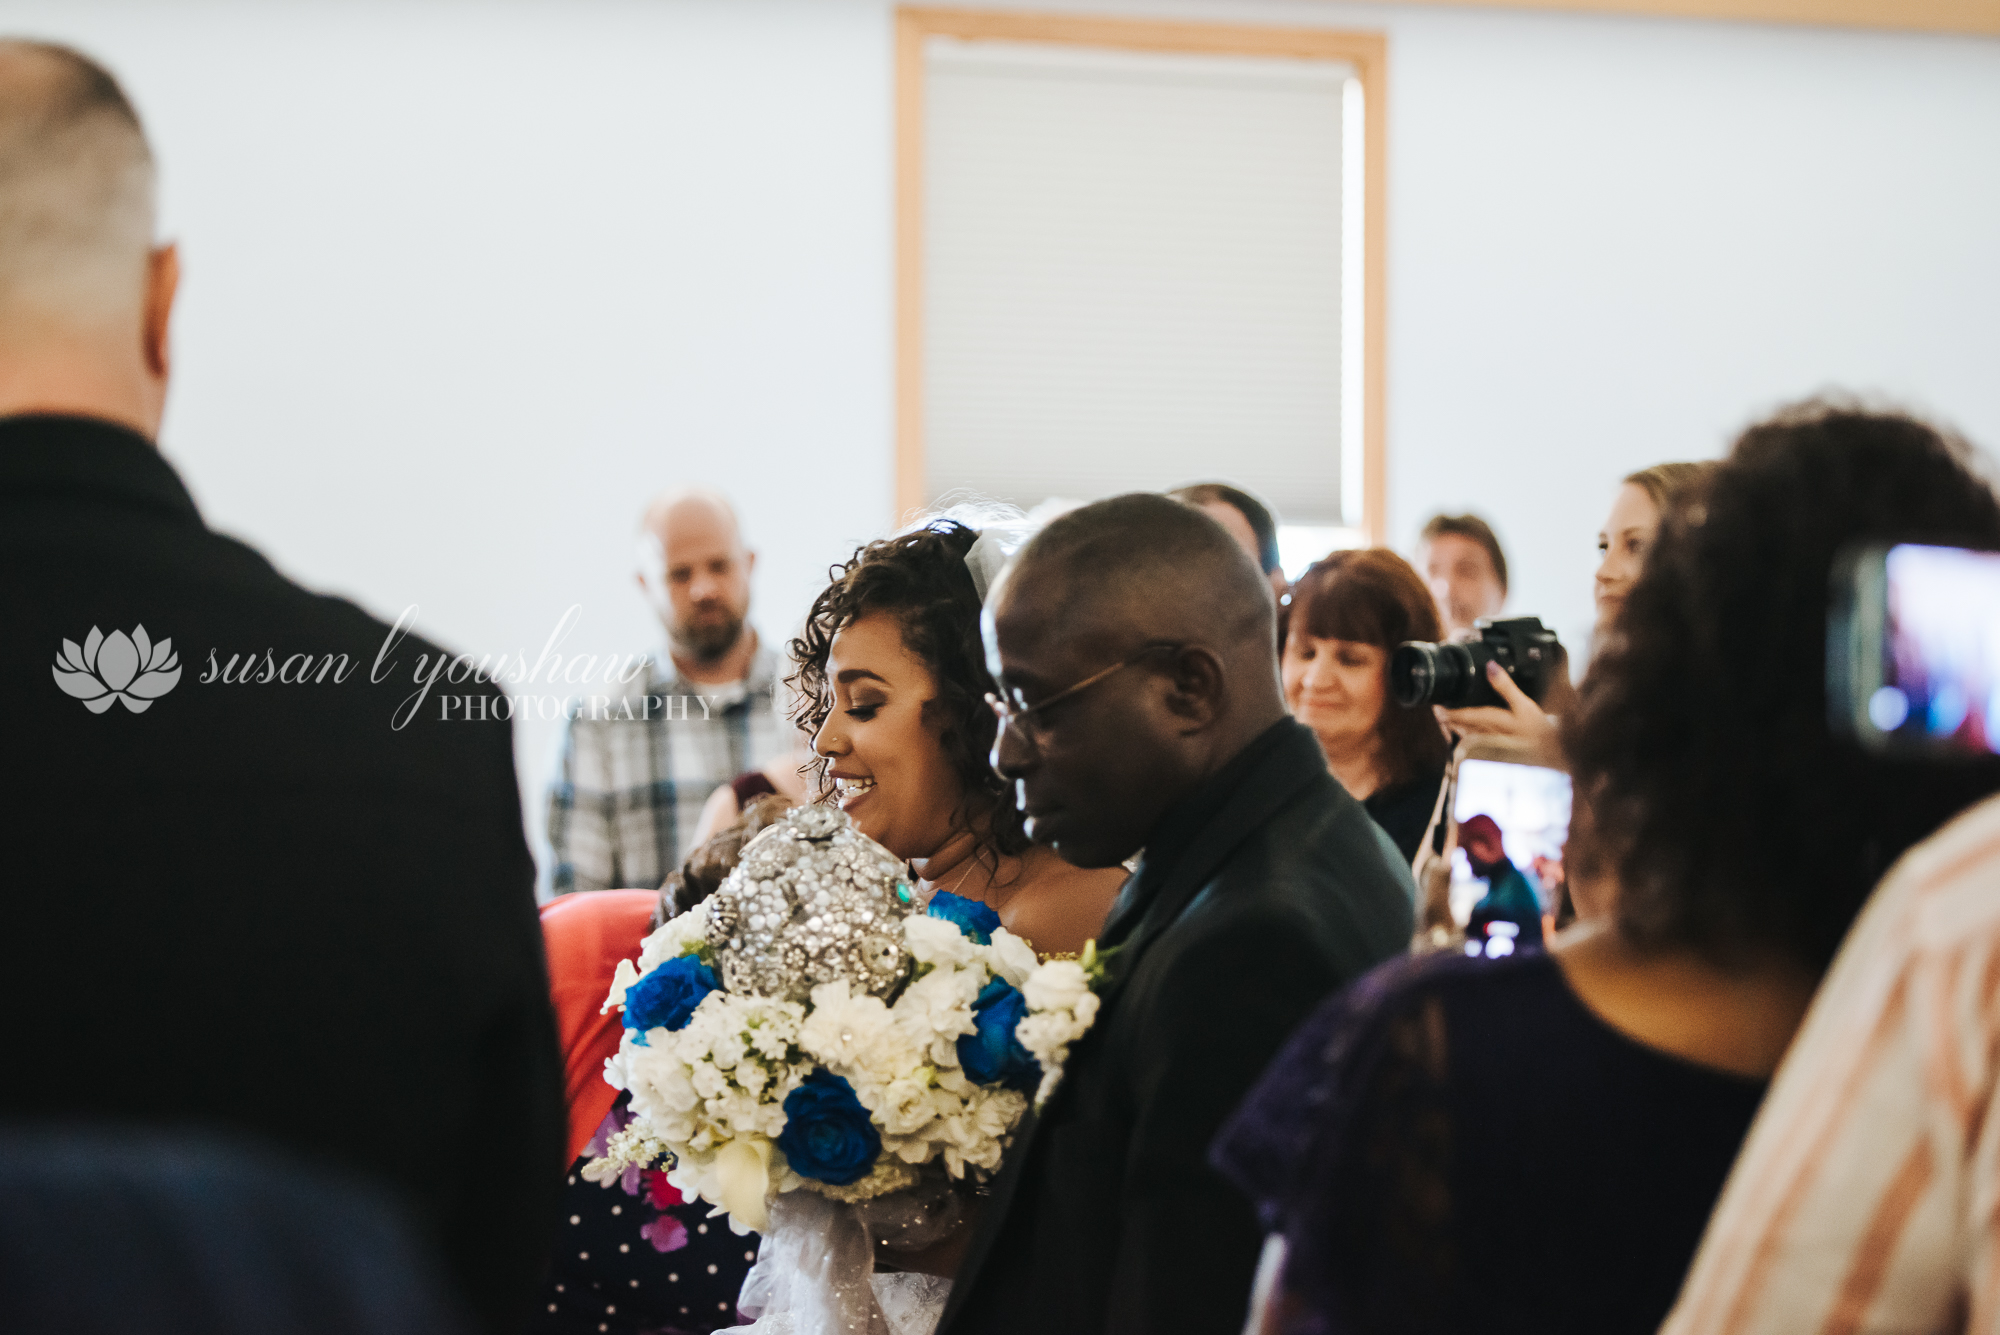 Katelyn and Wes Wedding Photos 07-13-2019 SLY Photography-55.jpg